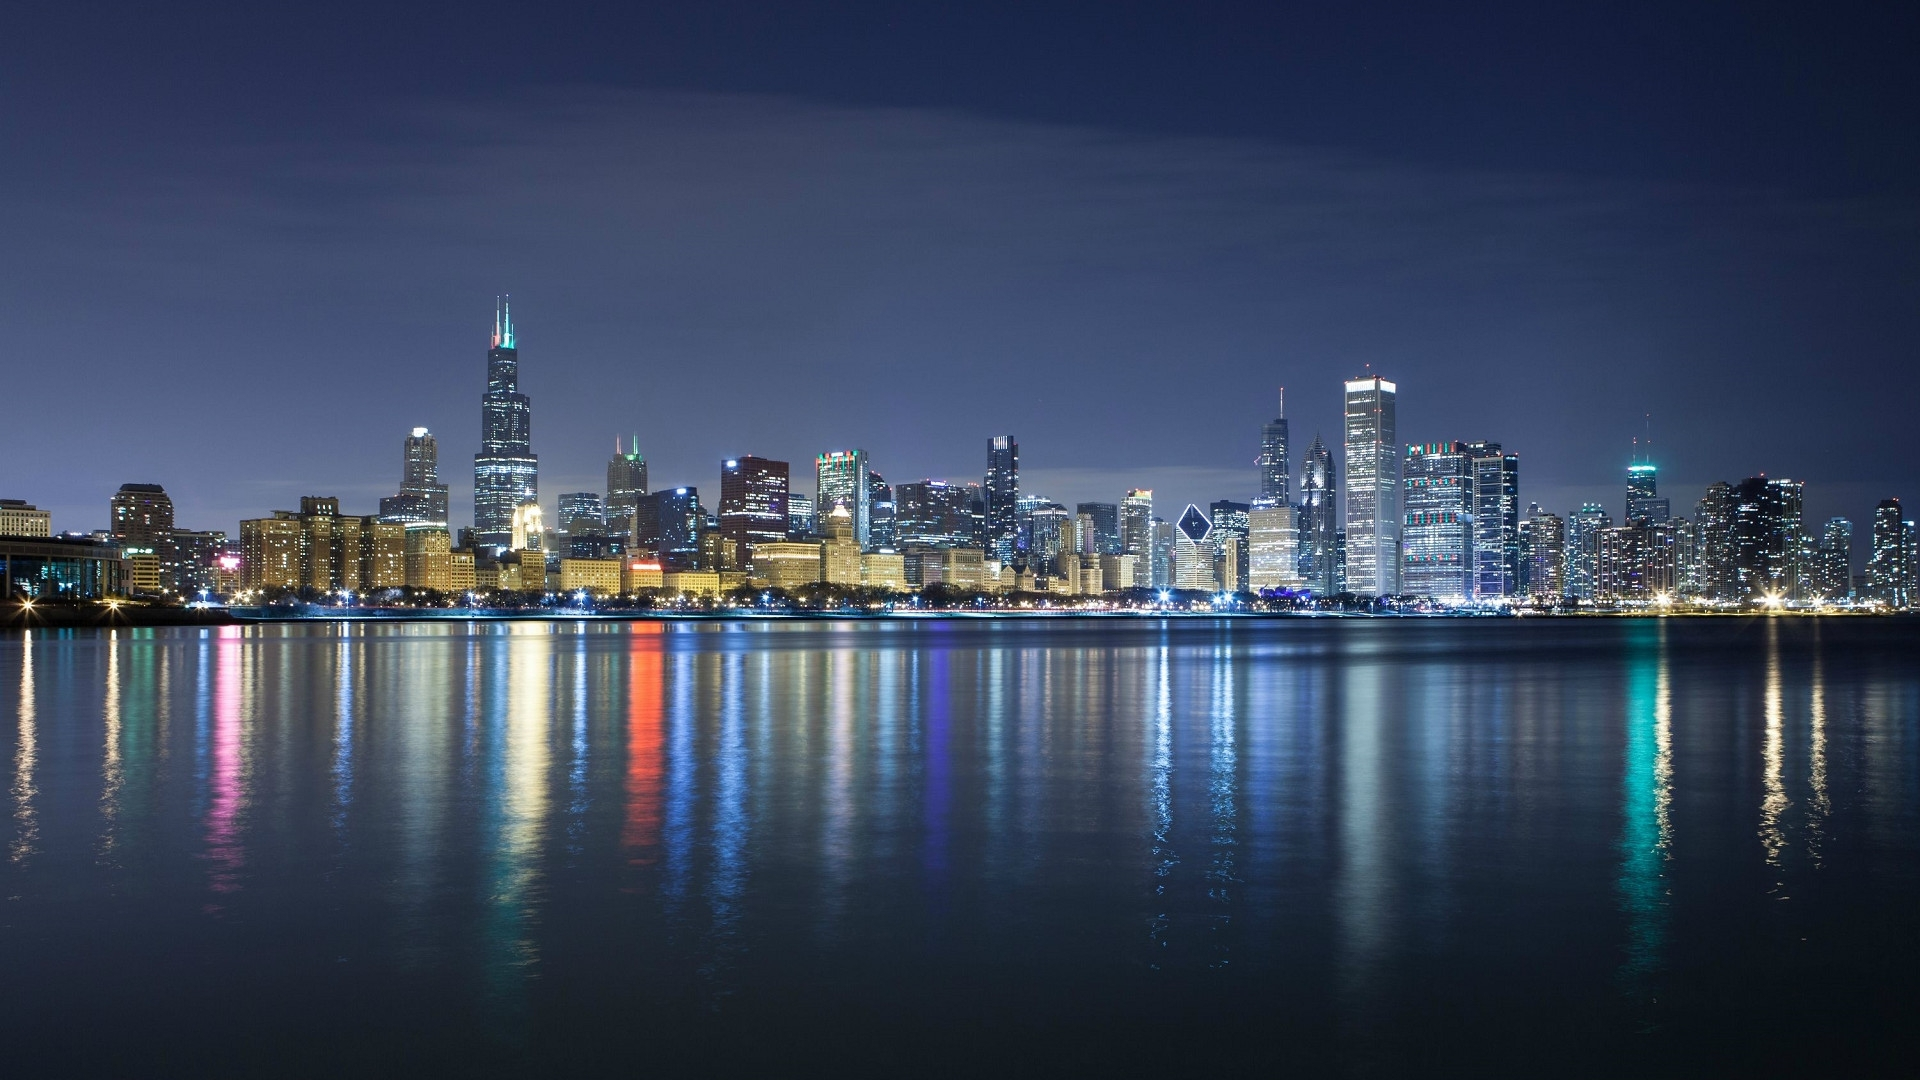 chicago skyline wallpaper 1920x1080 (74+ images)